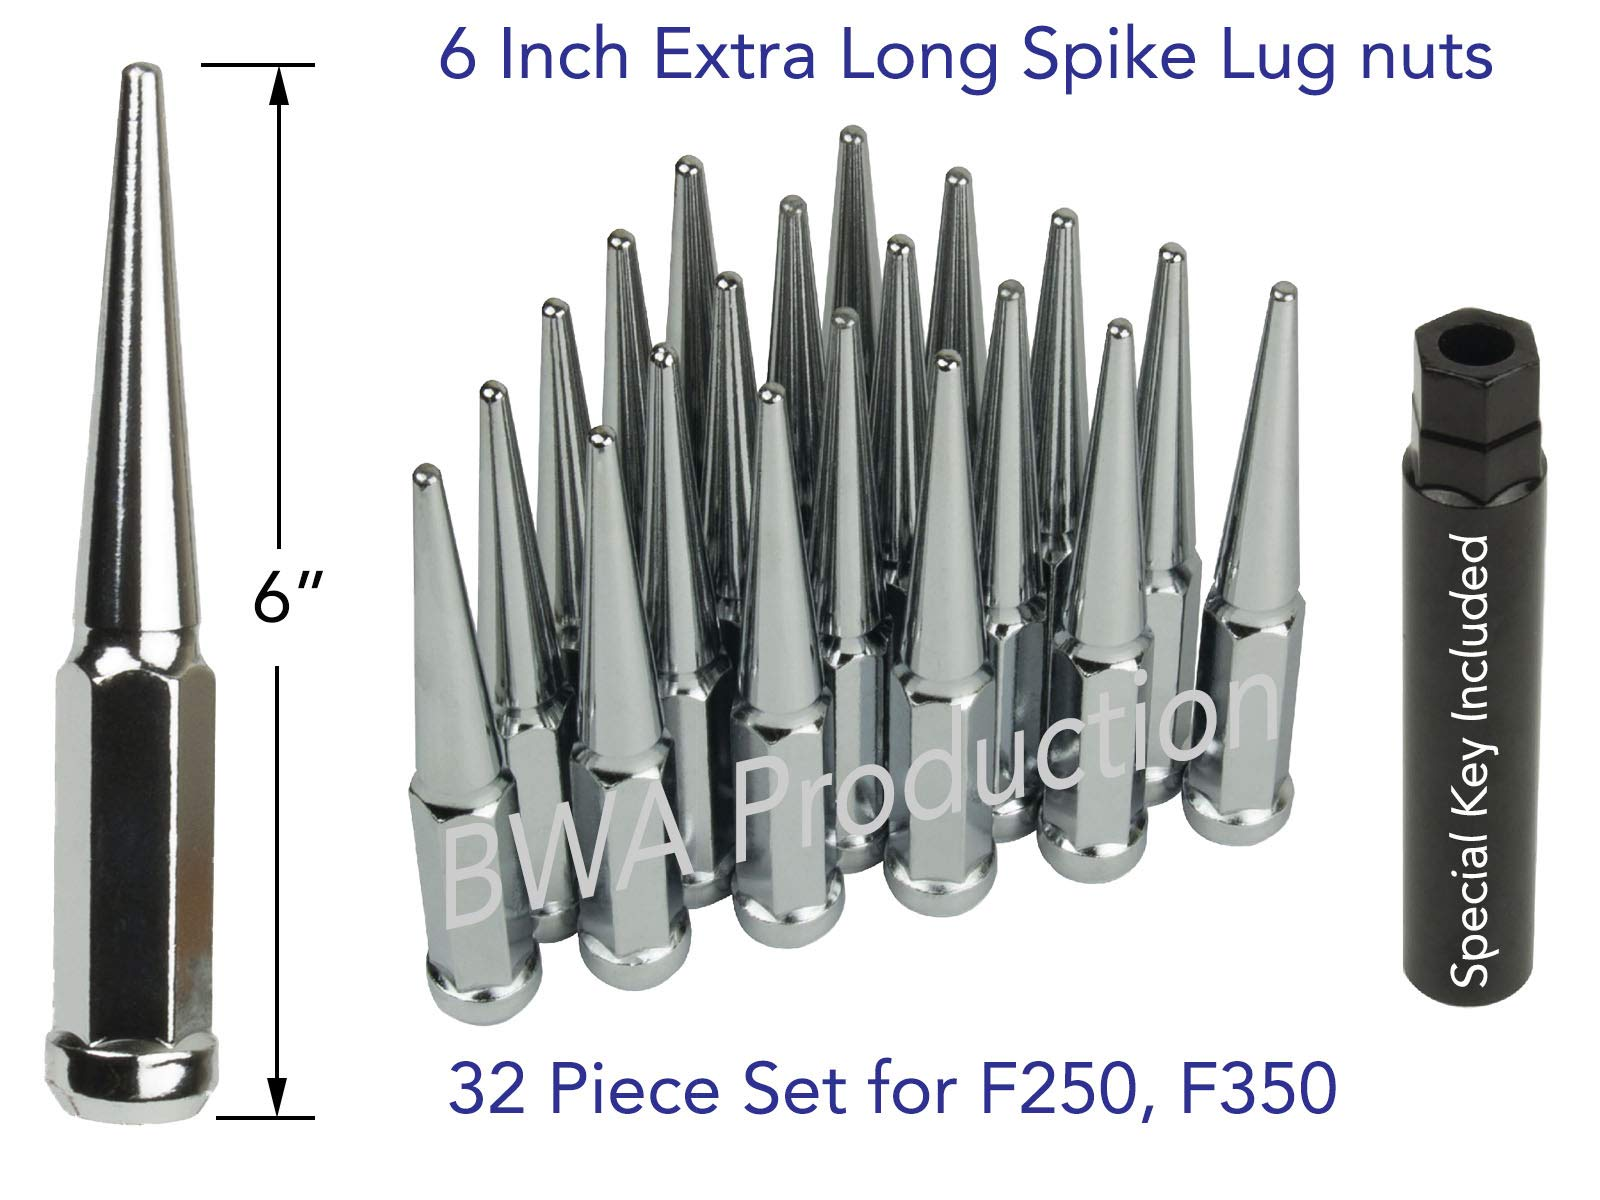 BWA 32 PCs Extra Long 6'' Tall 14x1.5 Chrome Spike Lug Nuts with Key, Designed to Fit 1999-2019 Chevy Silverado 2500 3500,|1999-2019 GMC Sierra 2500 3500,|2012-2019 Ram 2500 3500